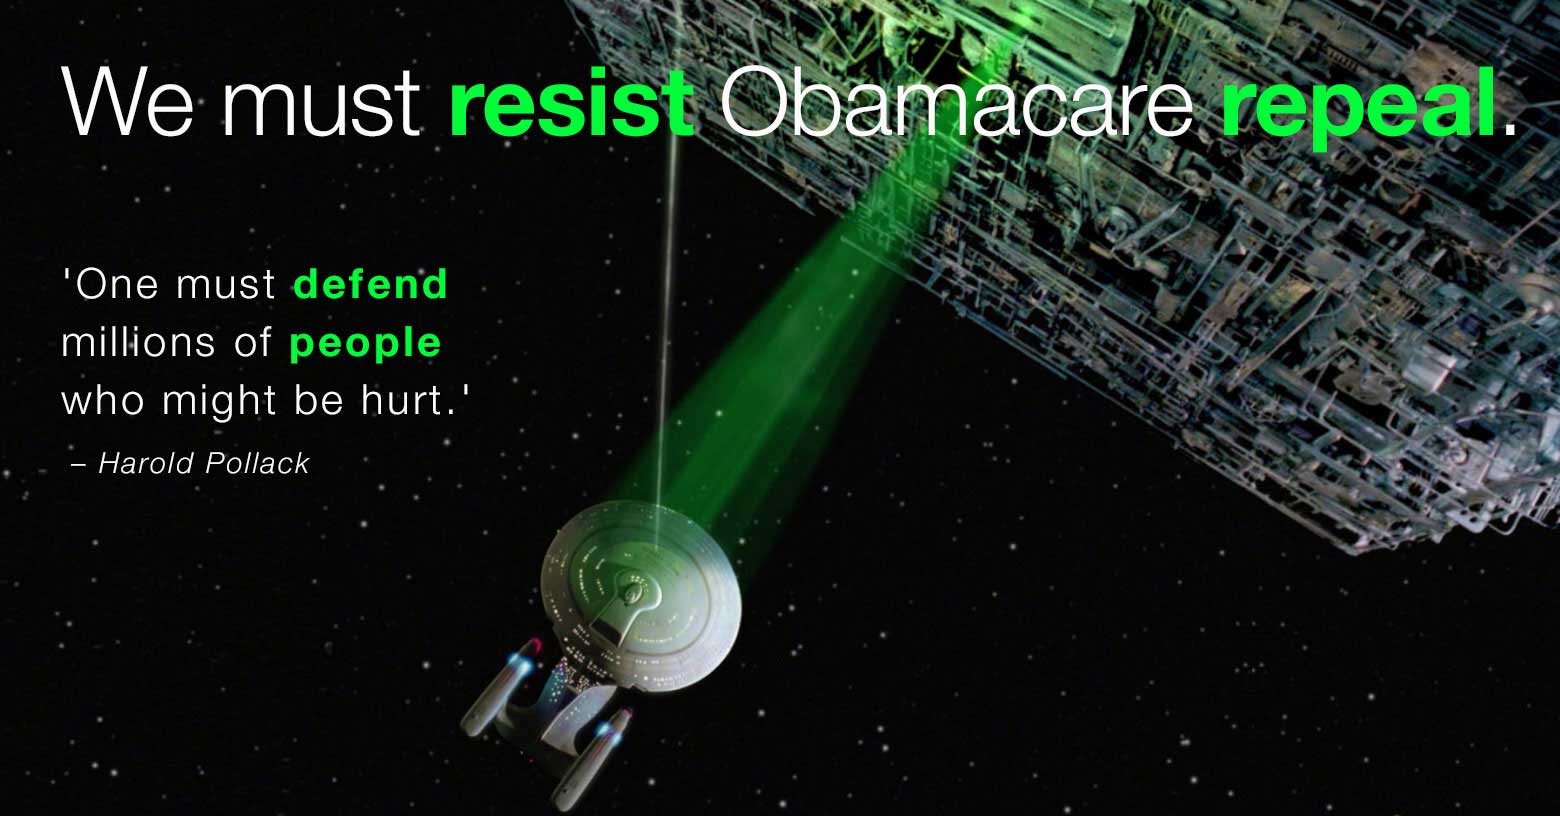 Resistance to repeal will not be futile. photo